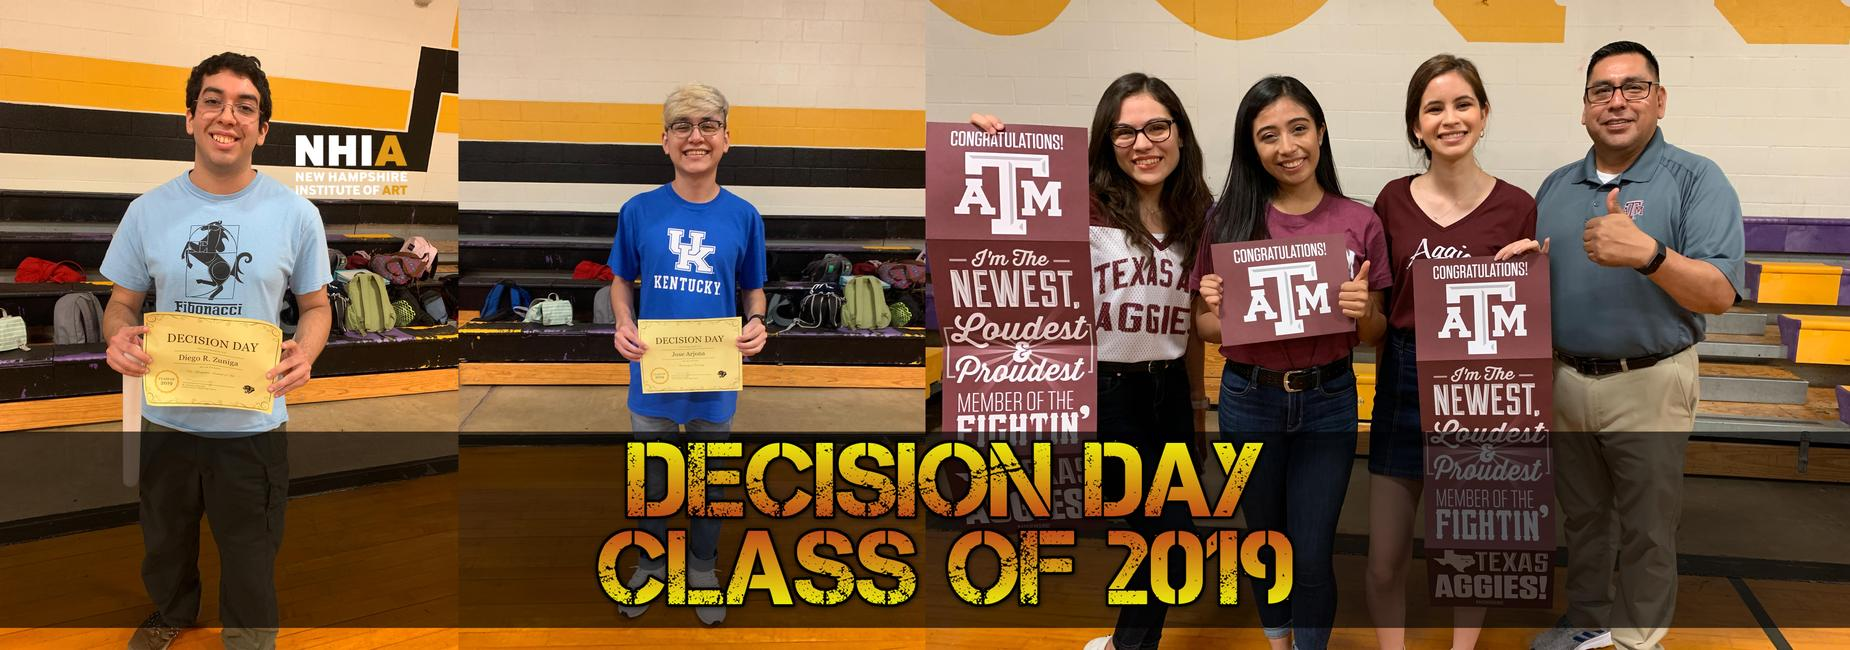 AECHS Decision Day 2019